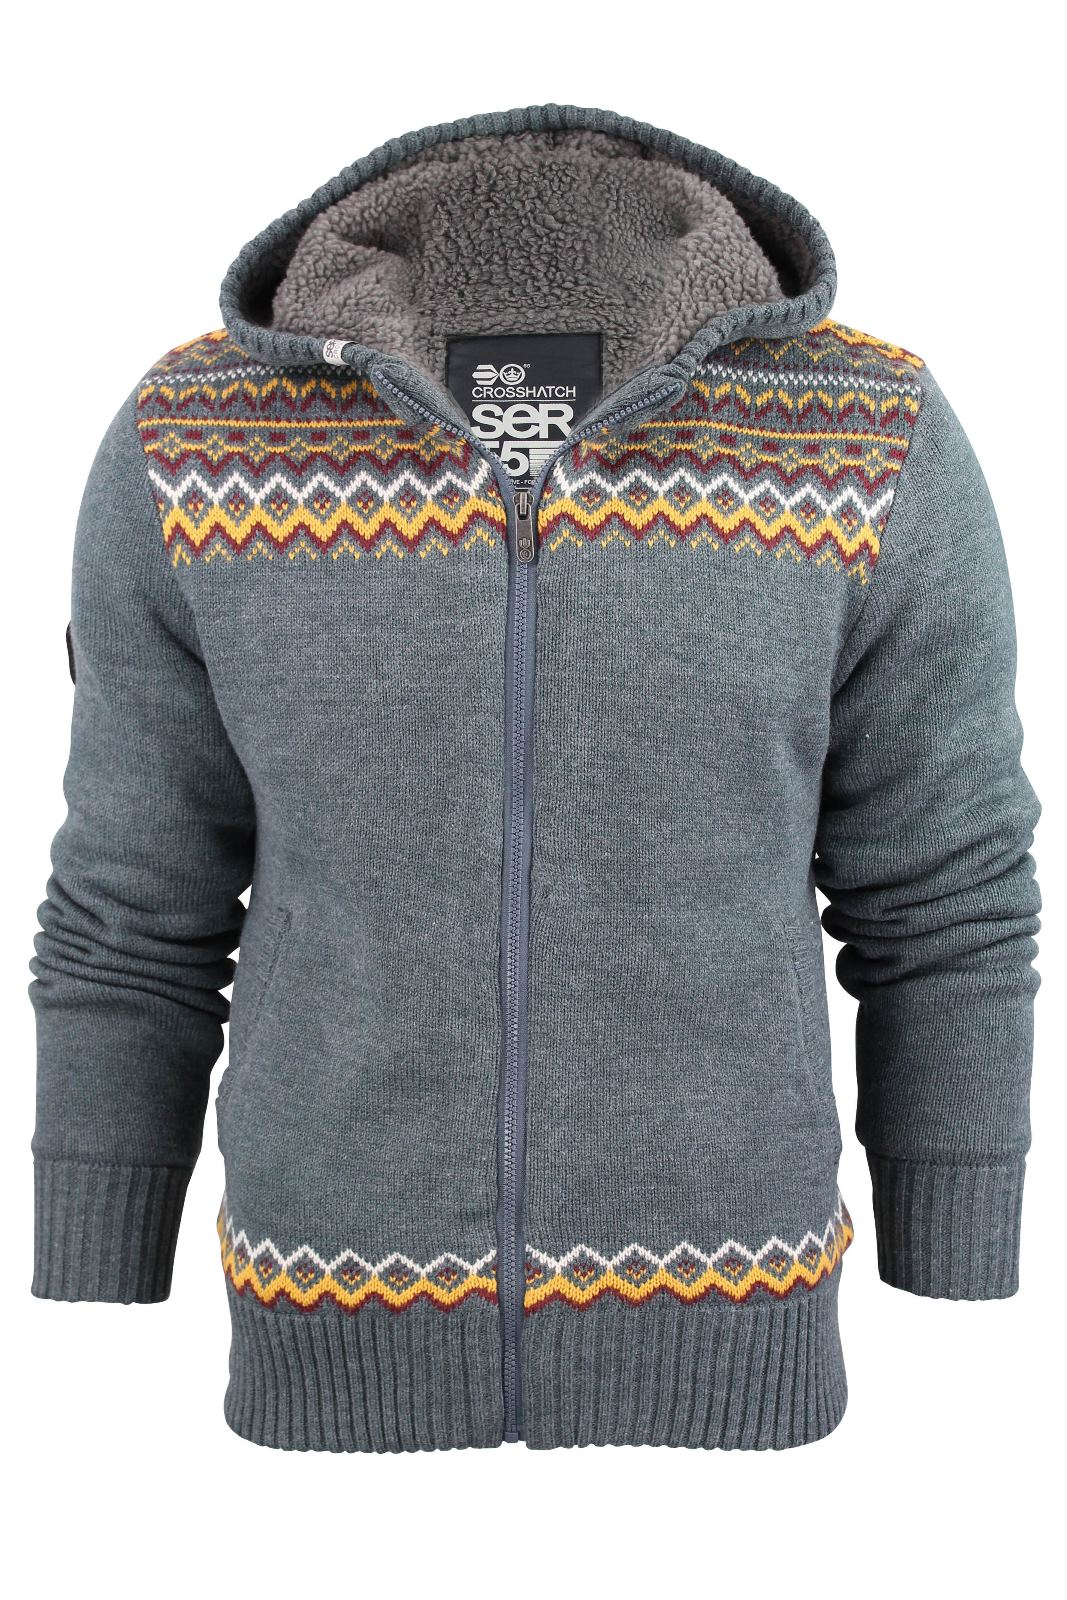 Mens Crosshatch Fair Isle Zip Hoodie Cardigan Sherpa Fleece Linned ...